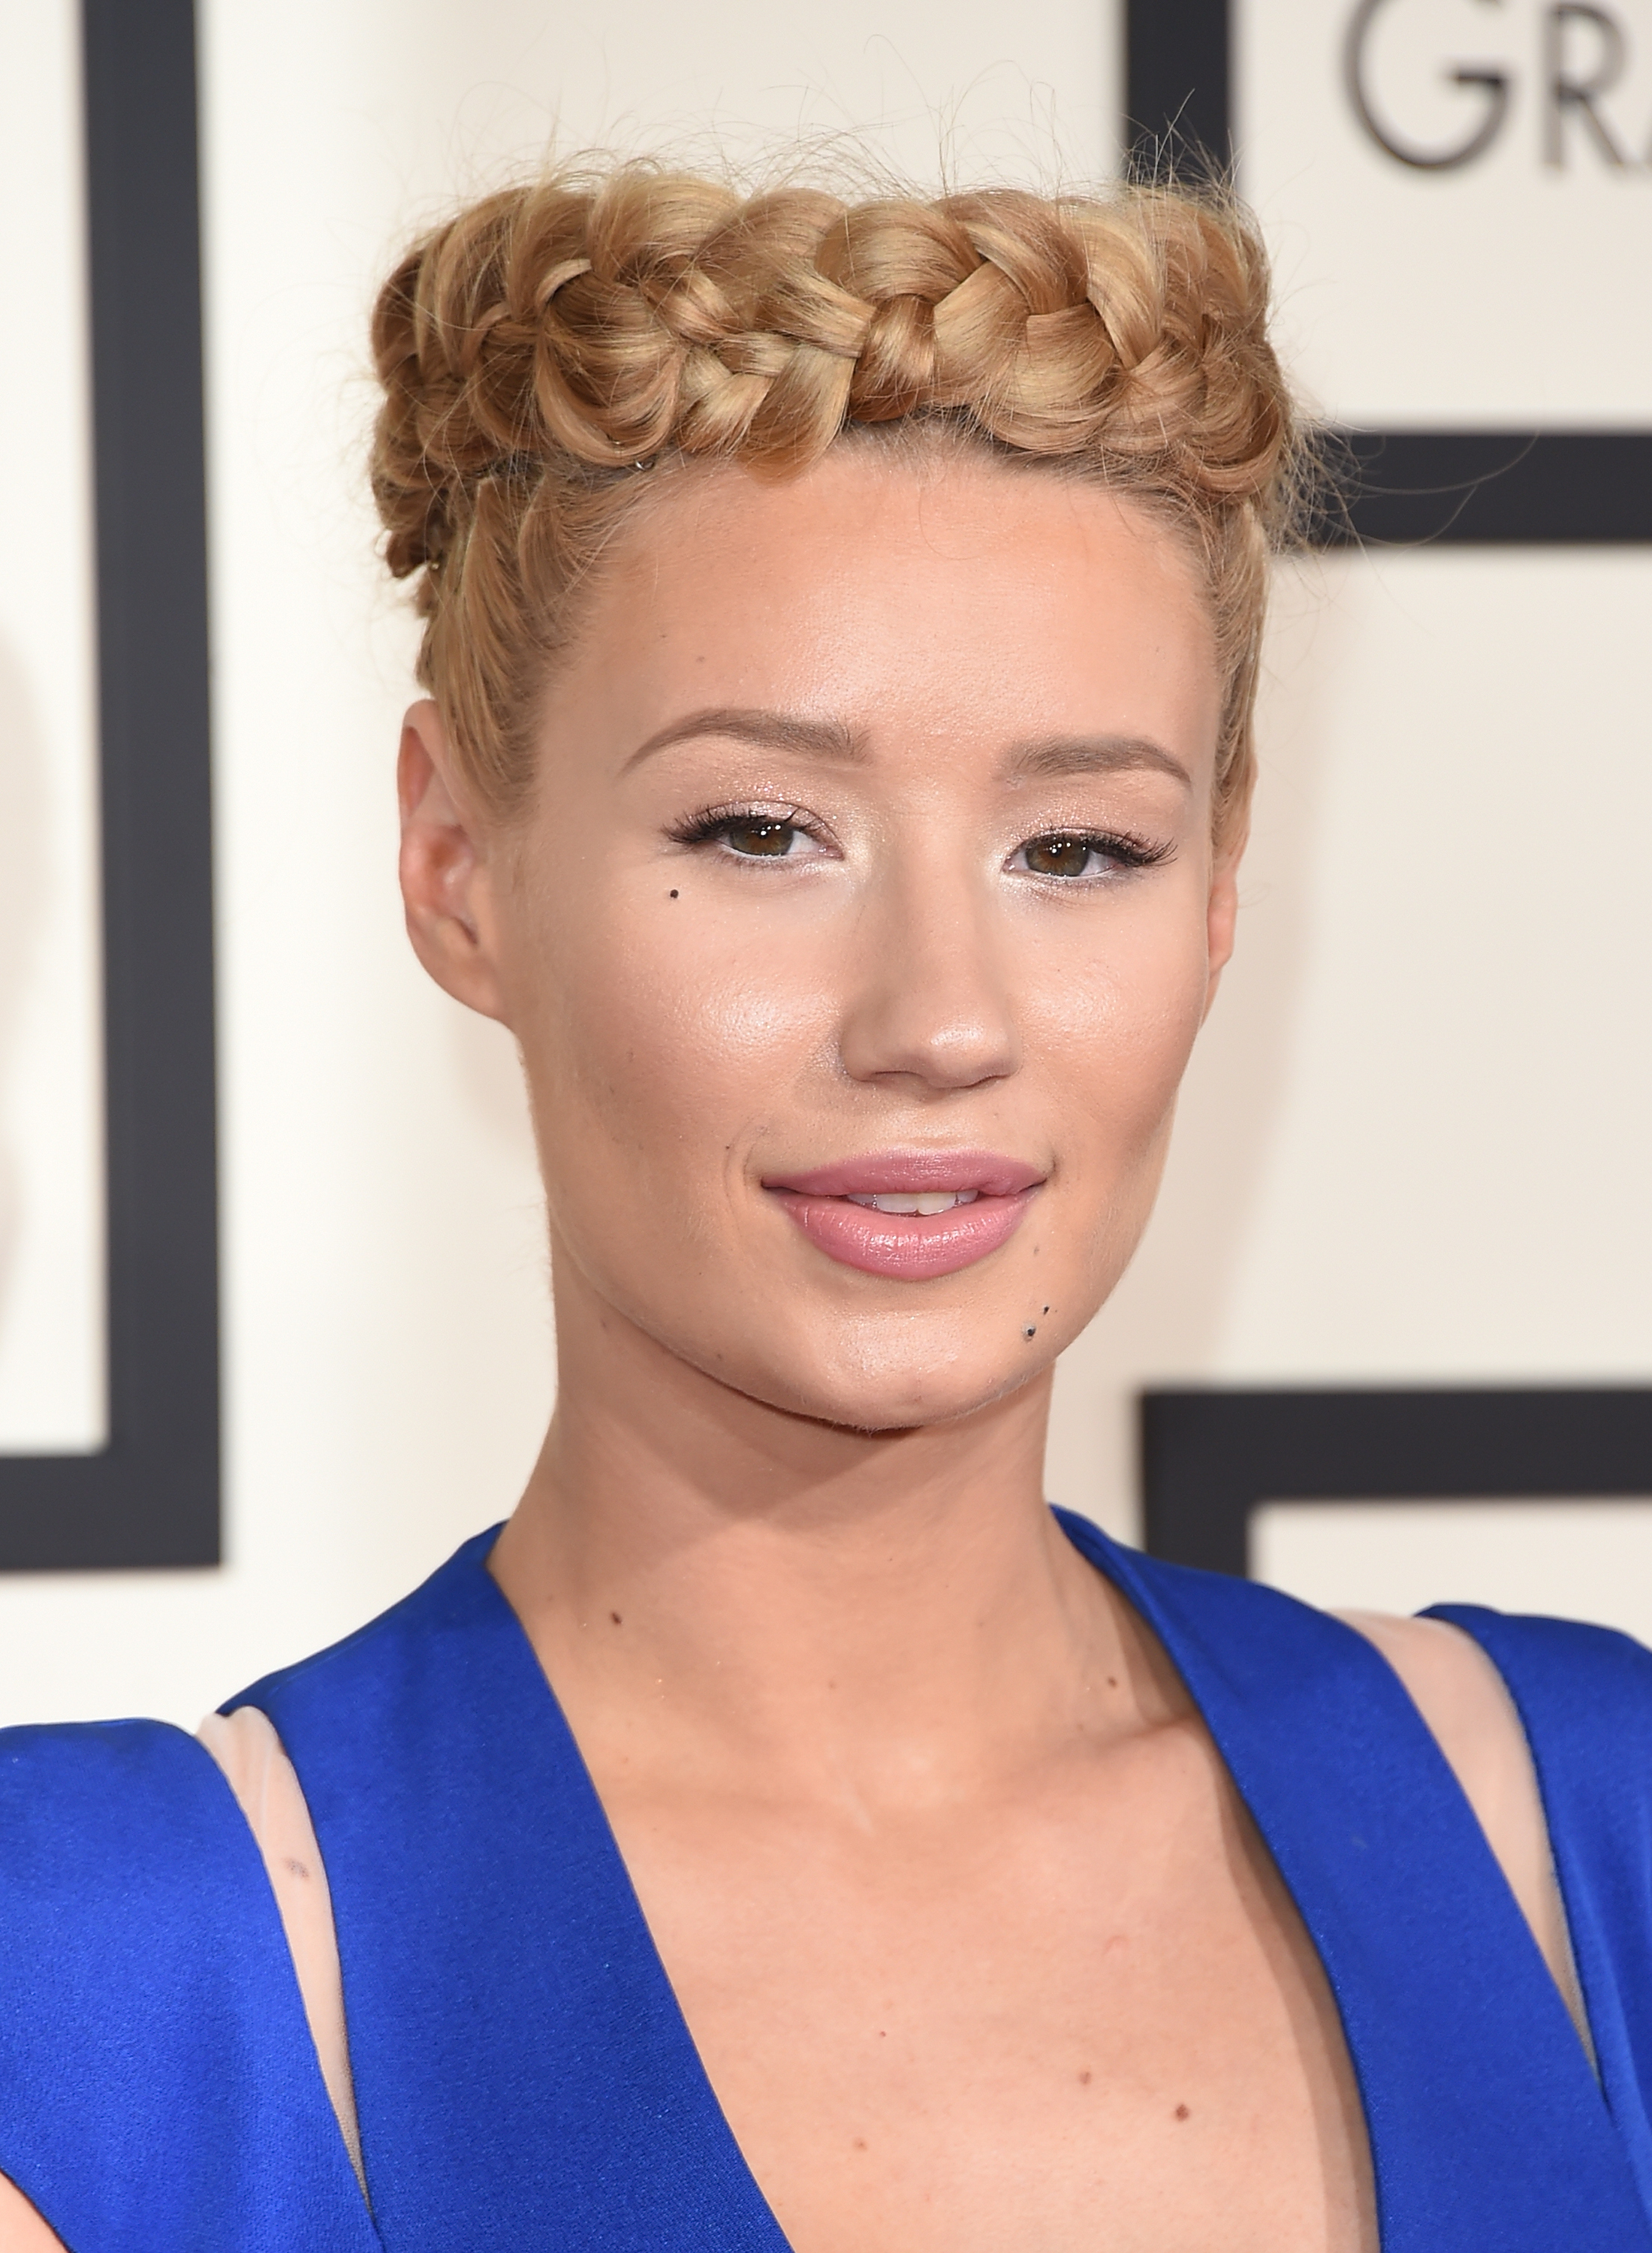 Singer Iggy Azalea attends The 57th Annual GRAMMY Awards at the STAPLES Center on February 8, 2015 in Los Angeles, California.